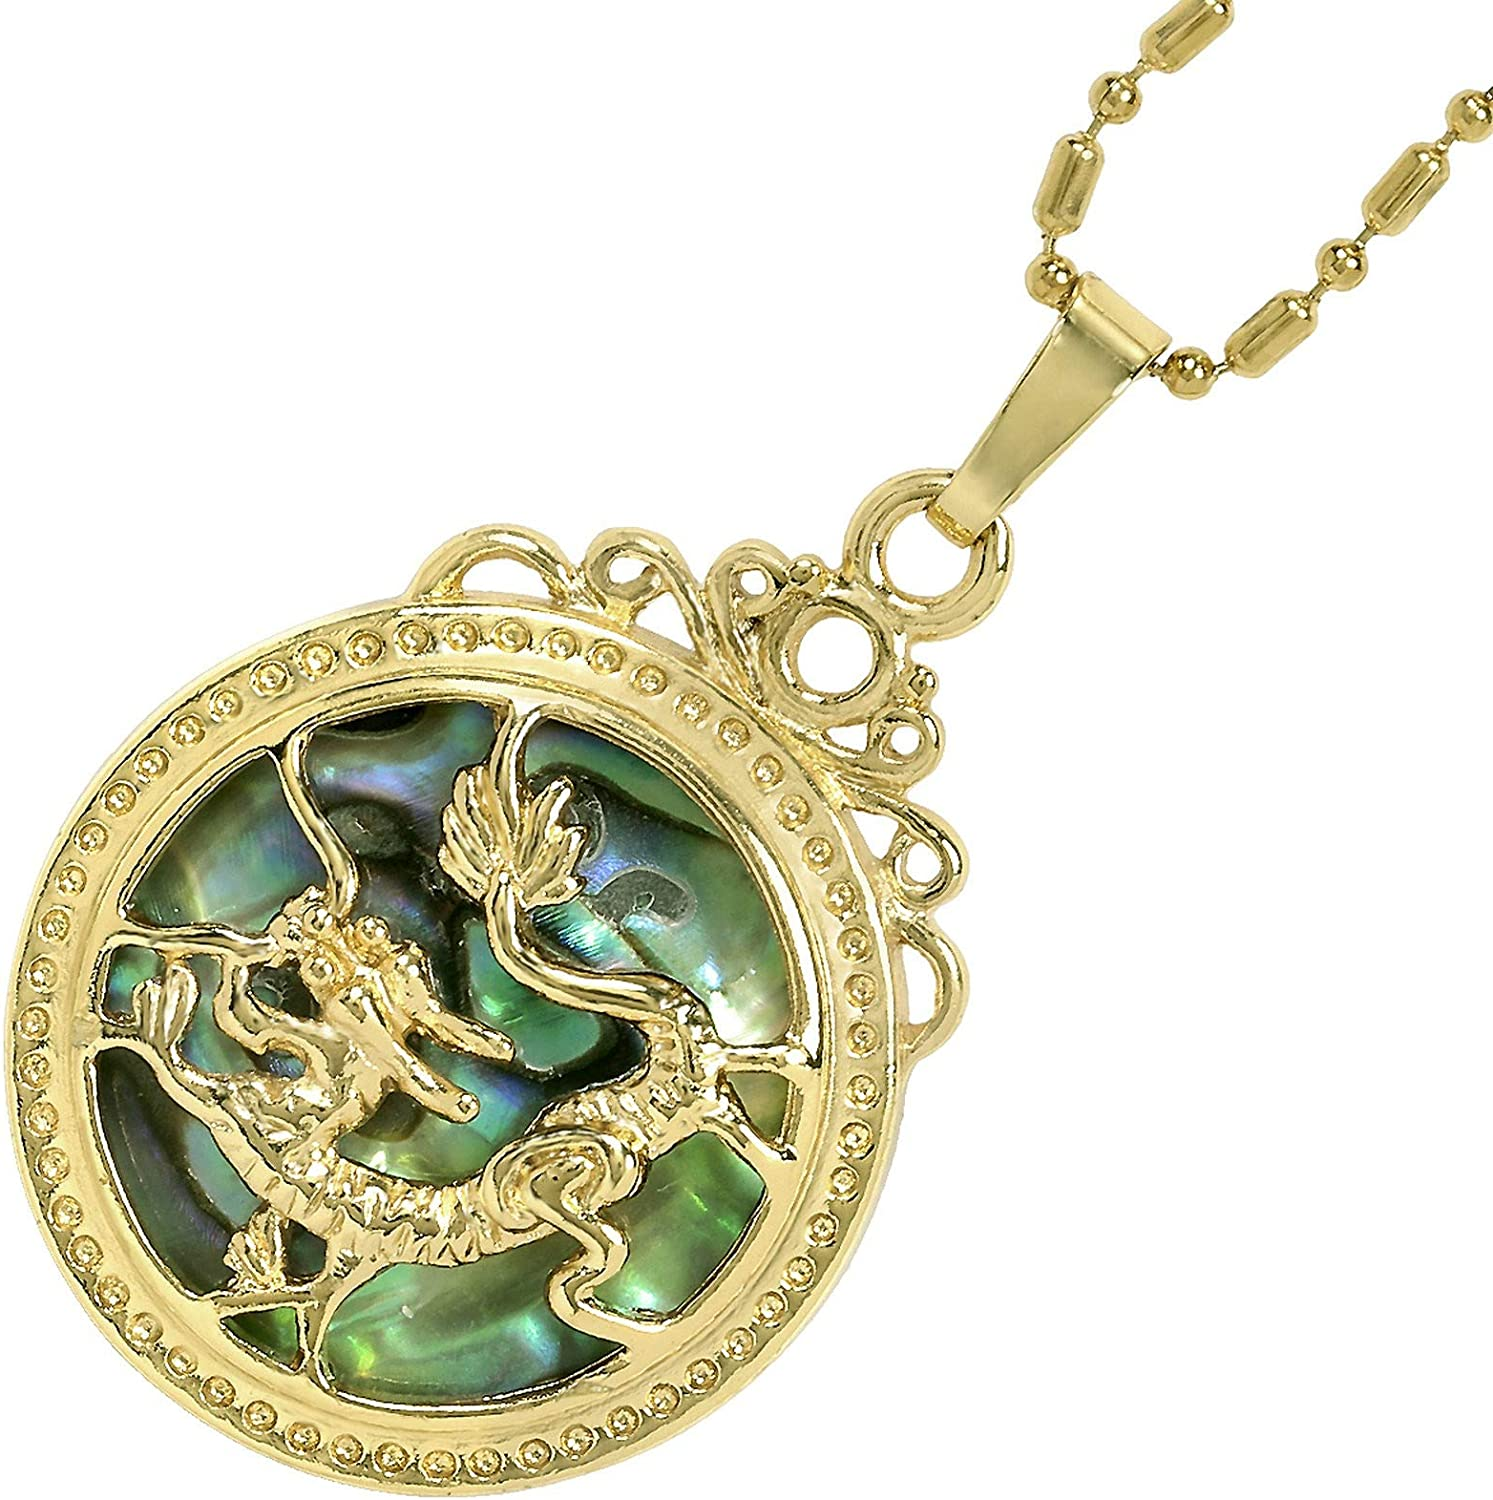 Yatming Gold Plated Round Abalone Shell Pendent Necklaces for Women and Men